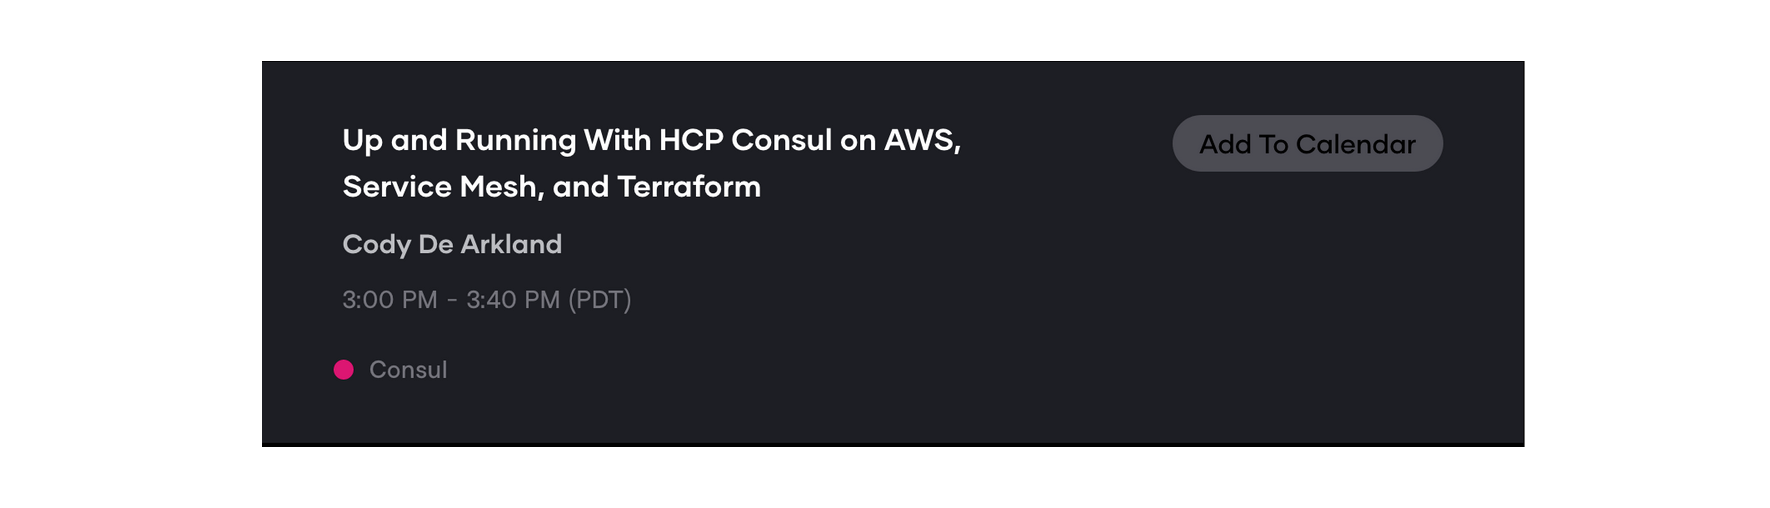 HCP Consul session card for HashiConf 2020 October